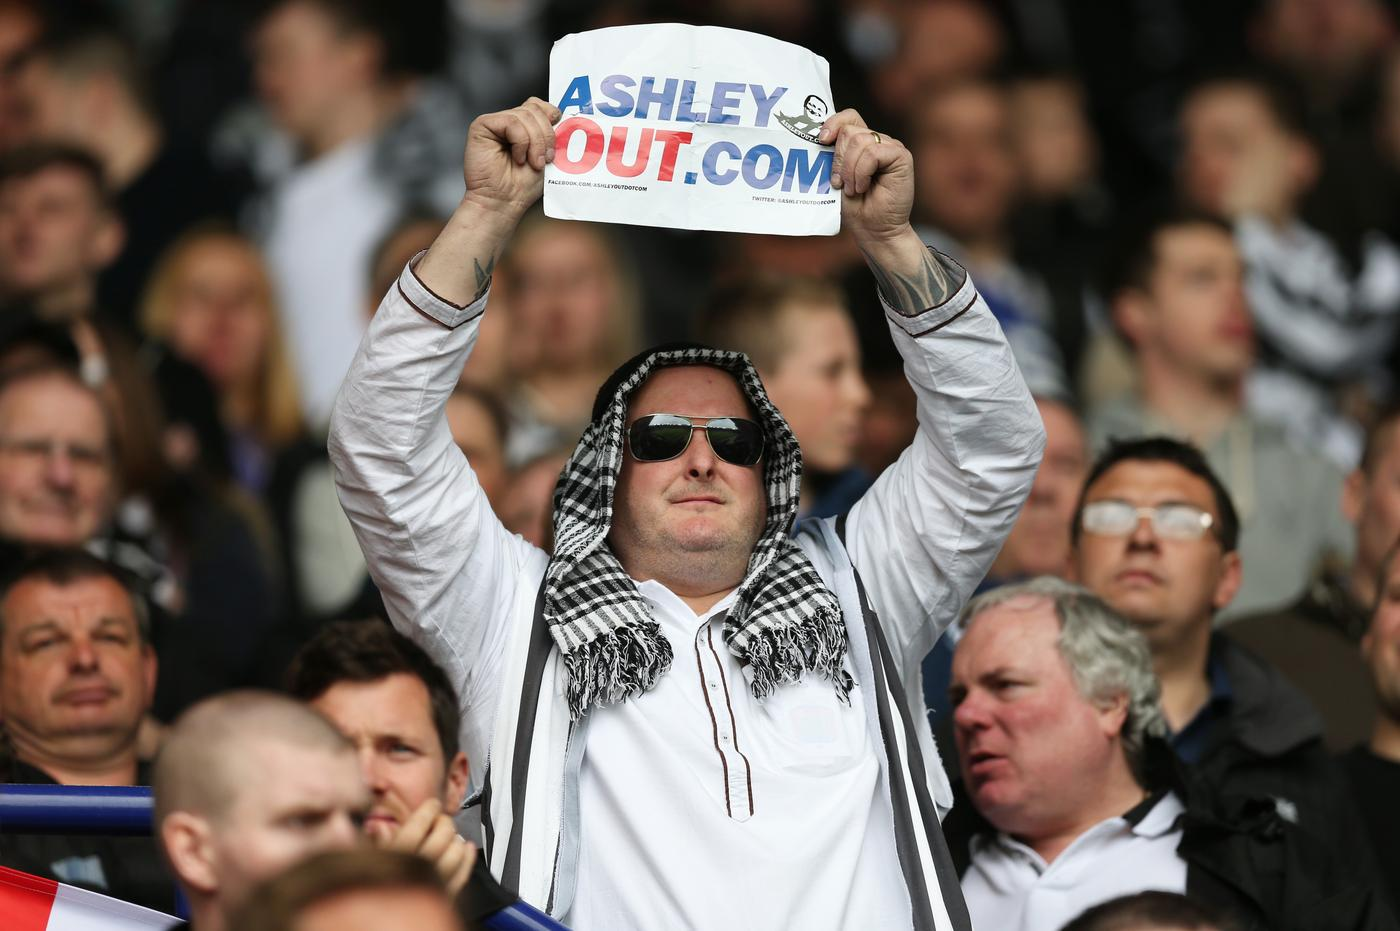 Paying football fans are buying into a tribe, greedy owners are failing to understand this